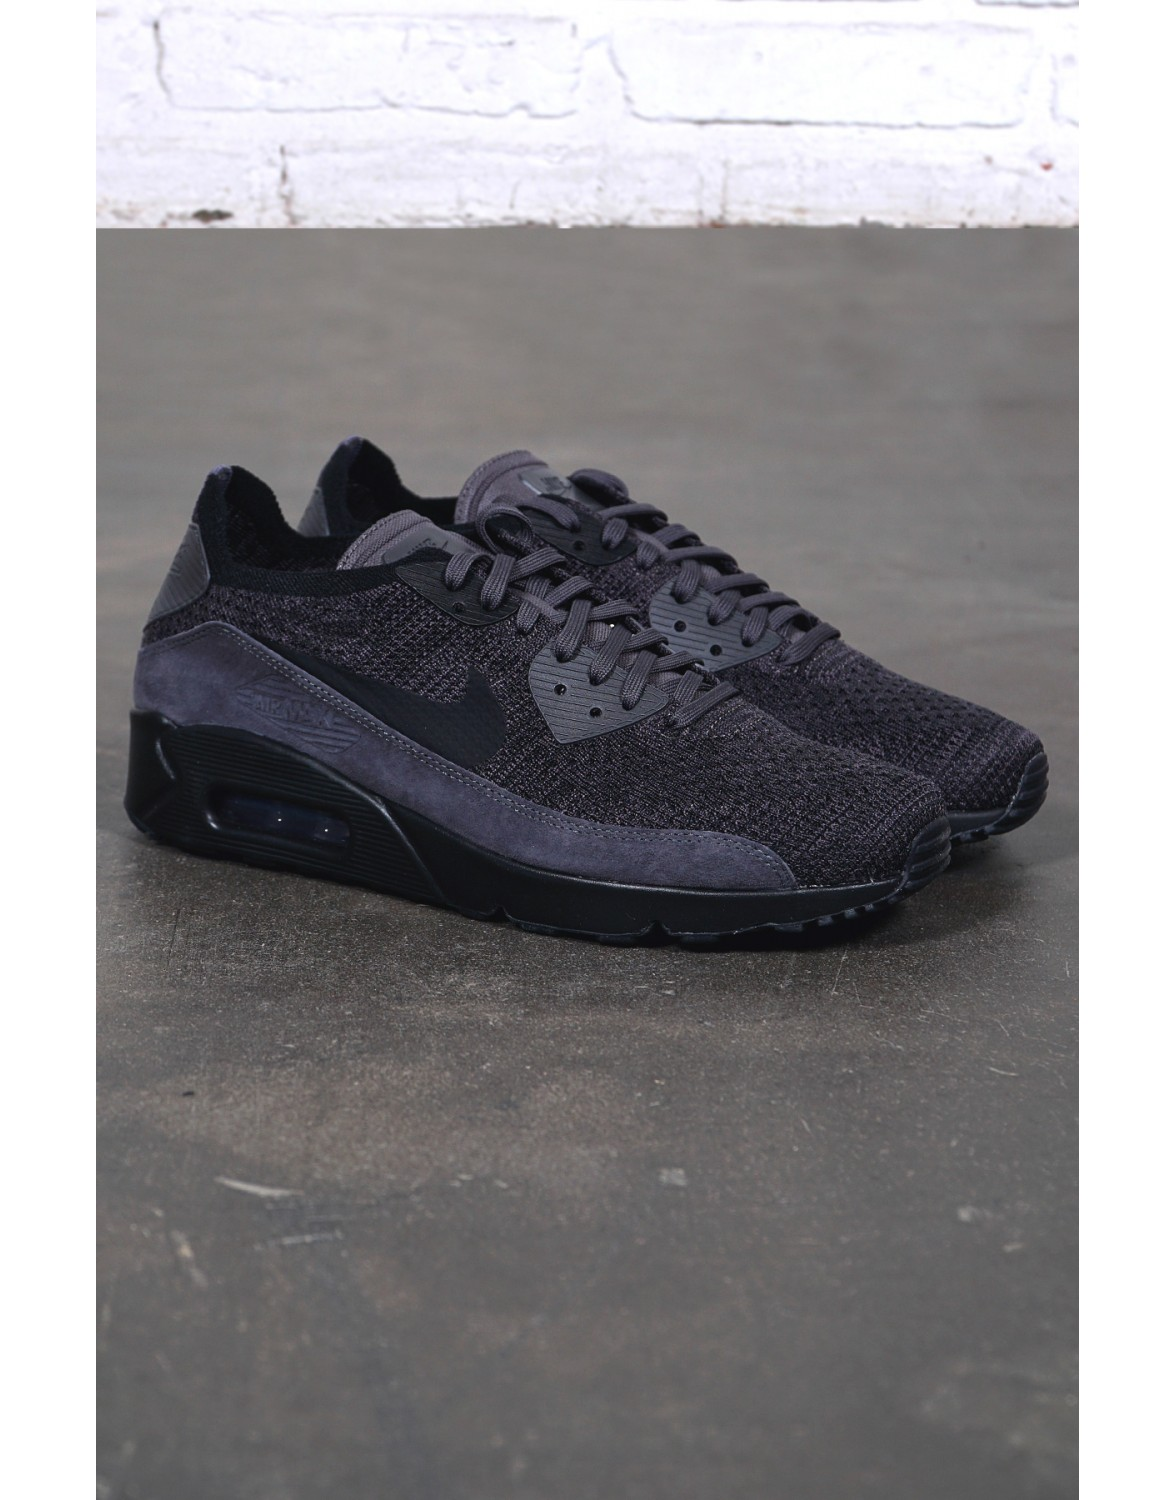 low priced a535e 6c54d Nike Sportswear Air Max 90 Ultra 2.0 Flyknit THUNDER GREY ...